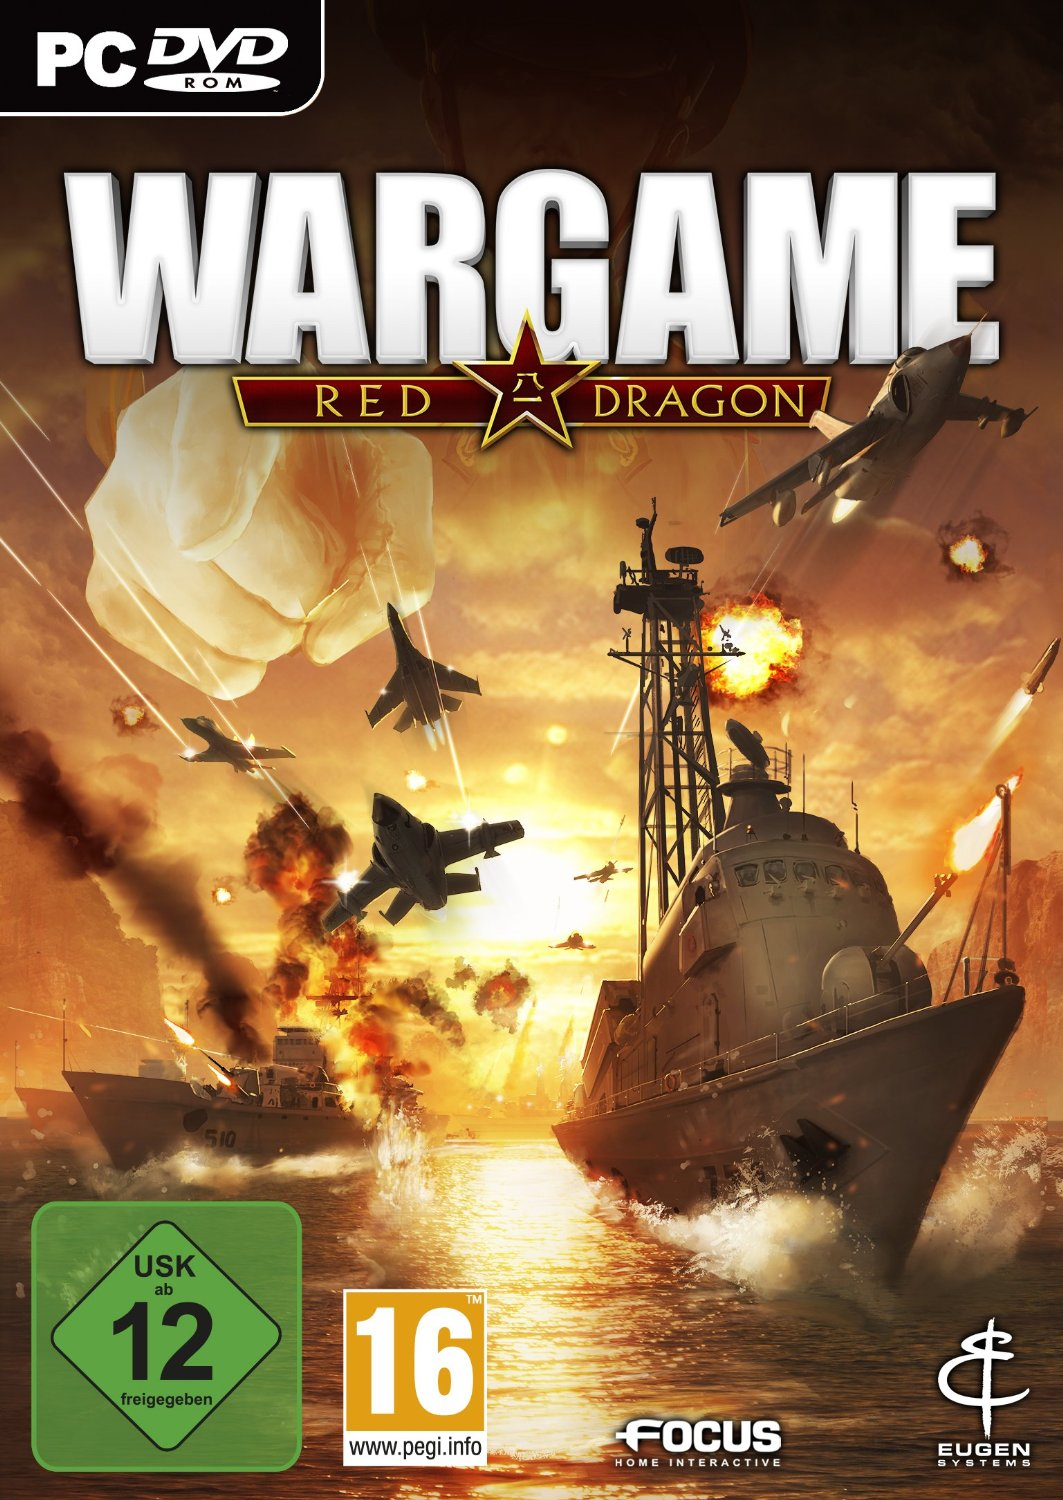 WARGAME 3: RED DRAGON - PC